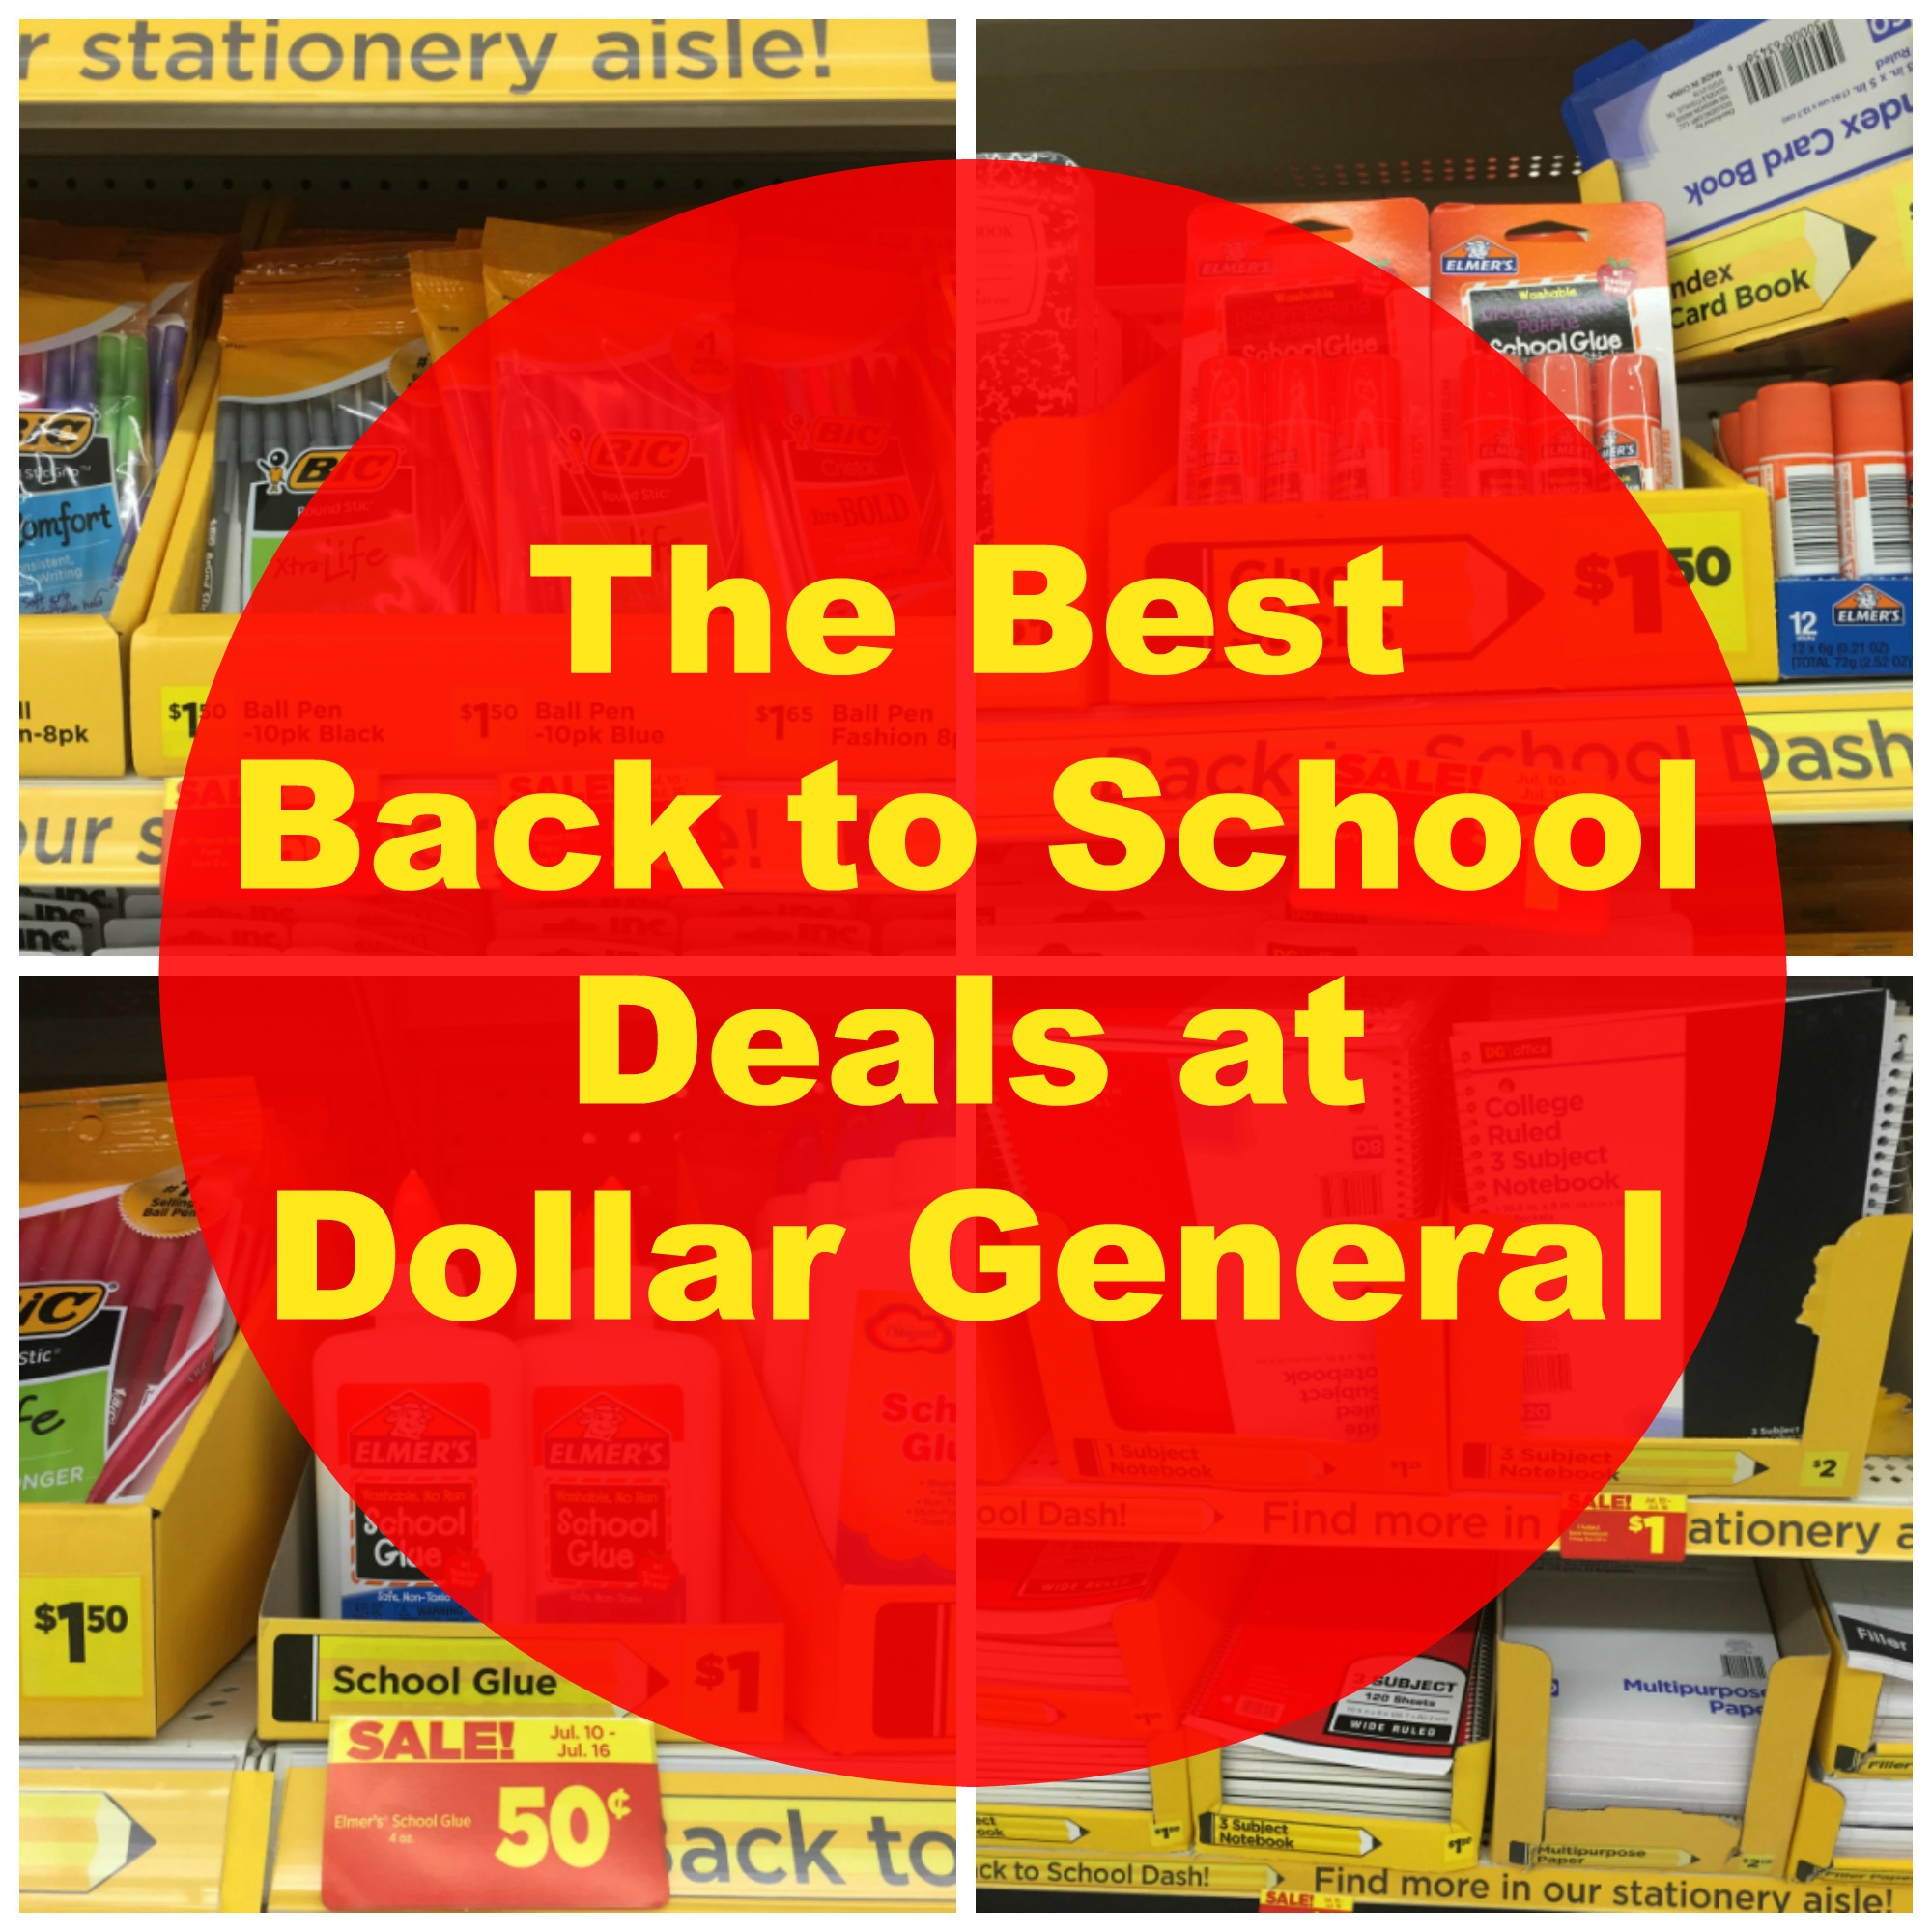 The Best Back to School Deals at Dollar General